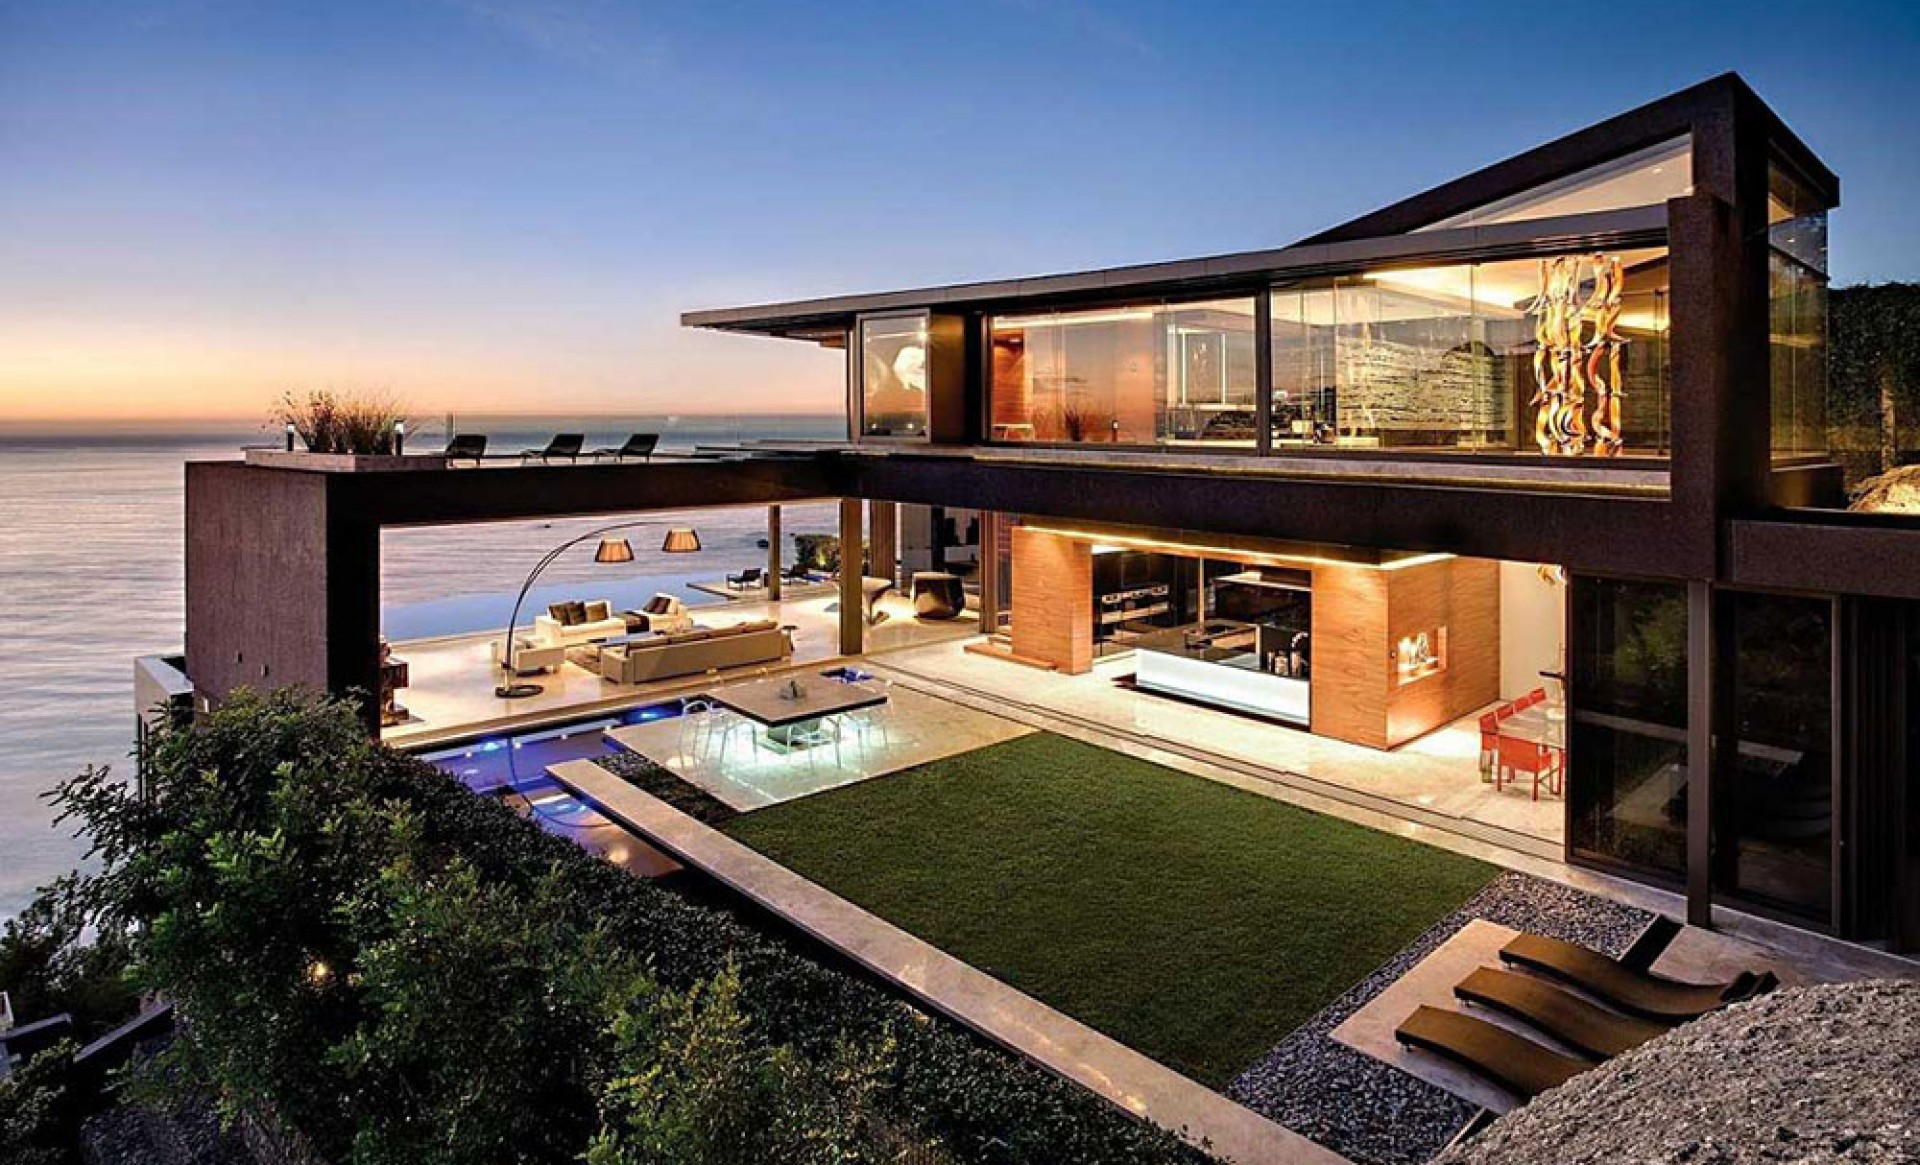 jim irsay house pictures celebrityhousepicturescom